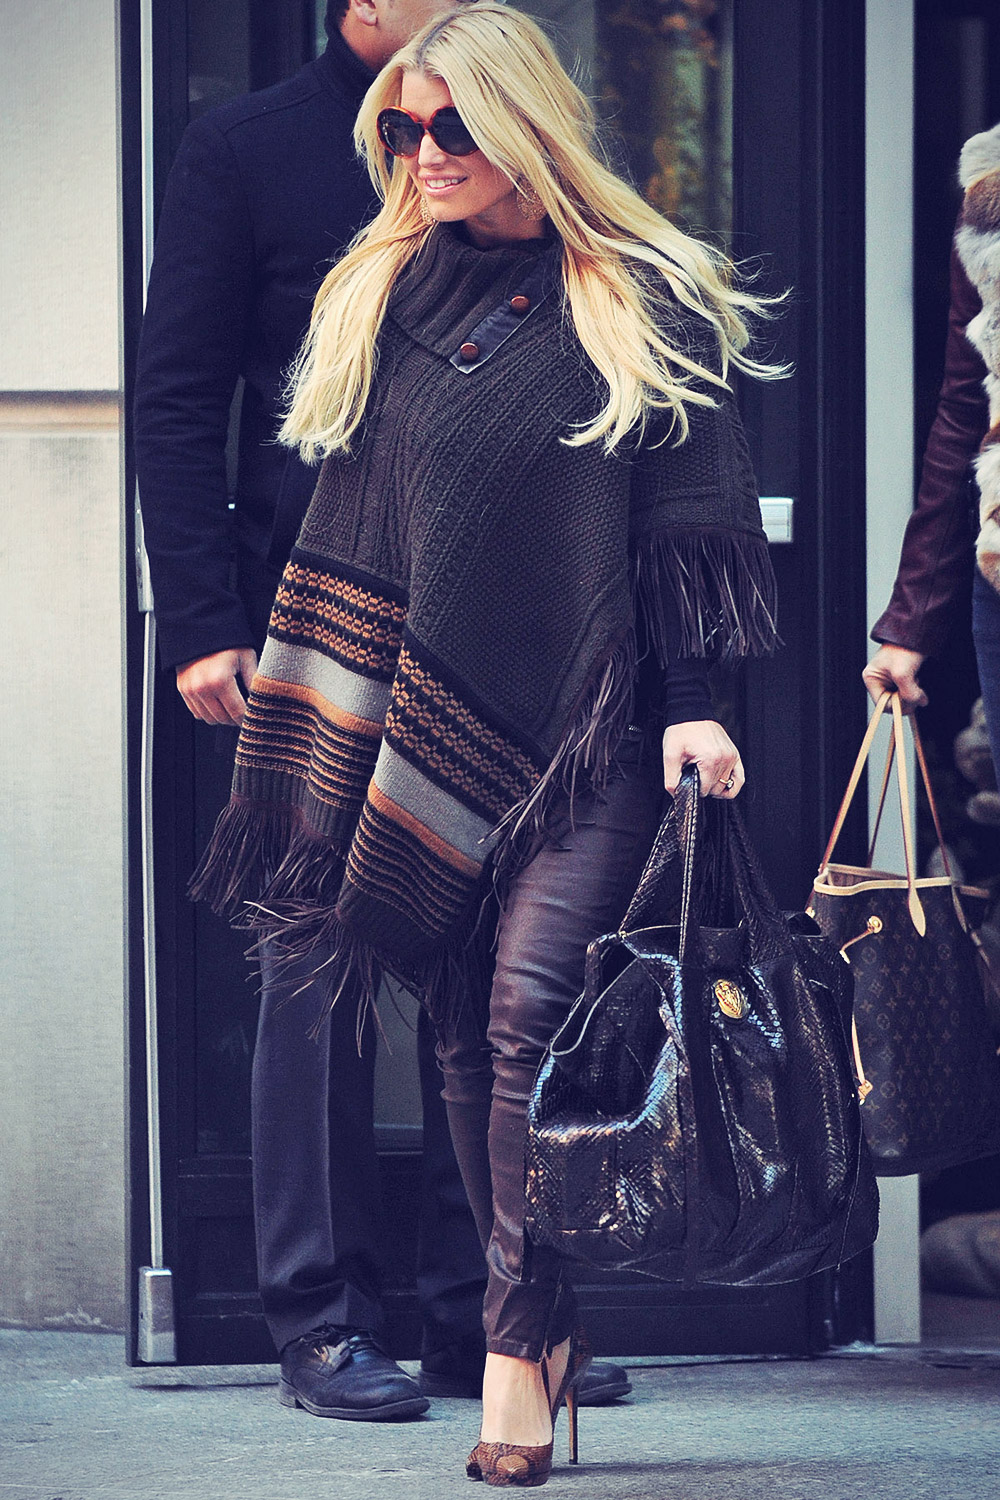 Jessica Simpson leaves JFK airport and arrives at LAX